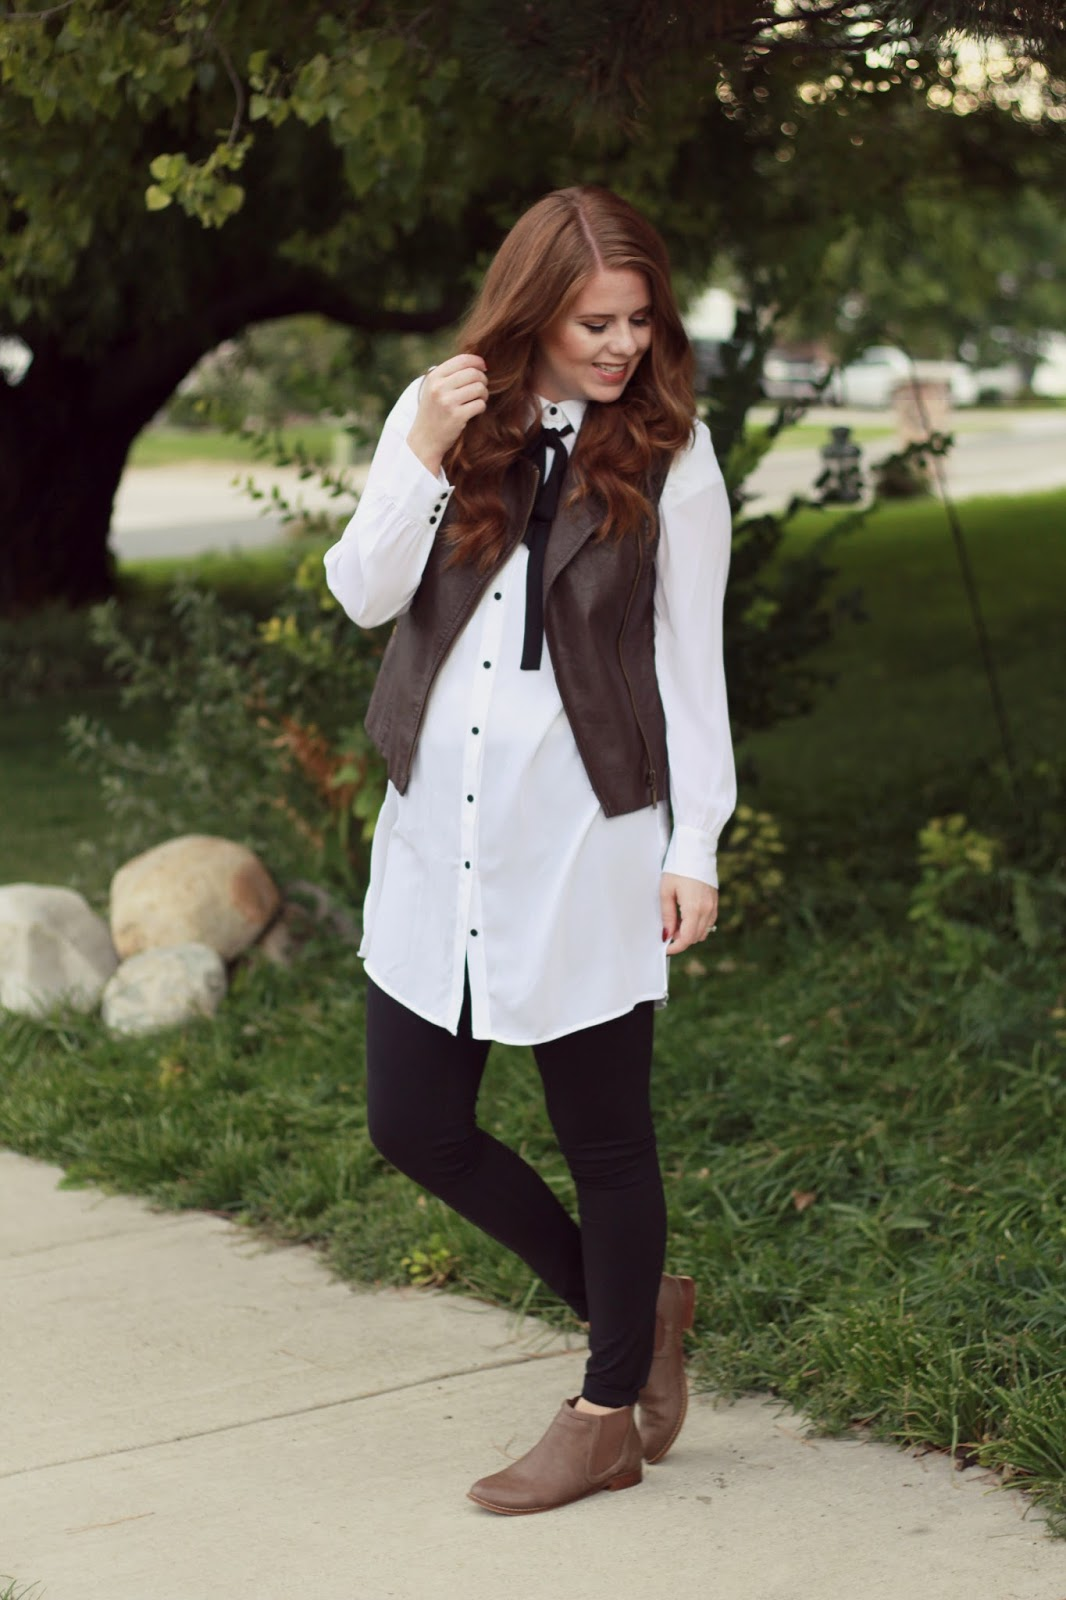 fall tunic outfit